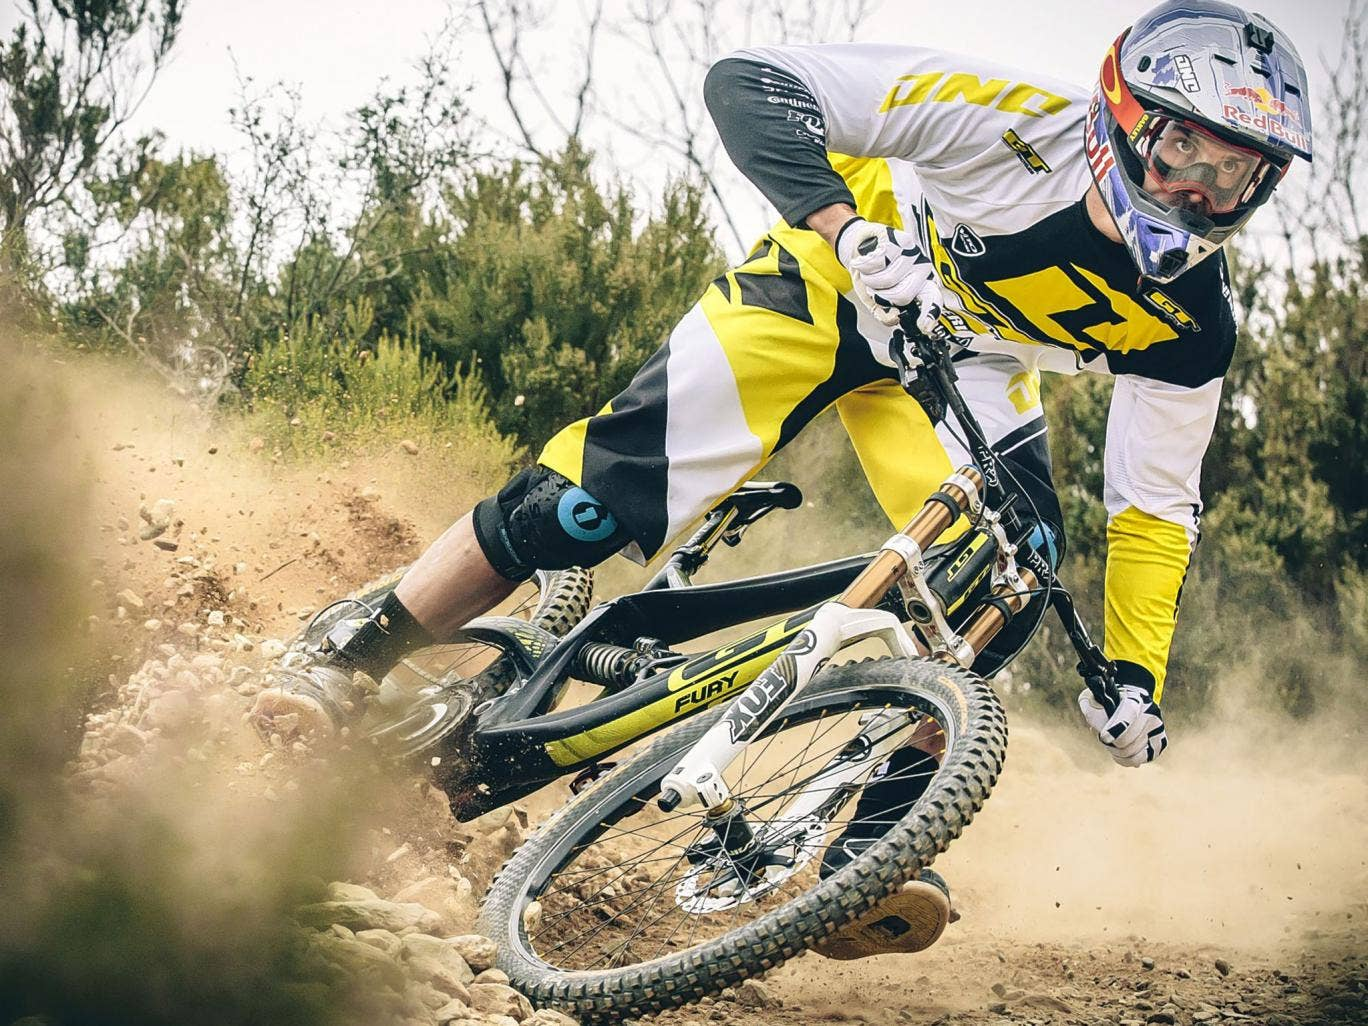 Gee Atherton, a one-time world champion downhill mountain biker, in action